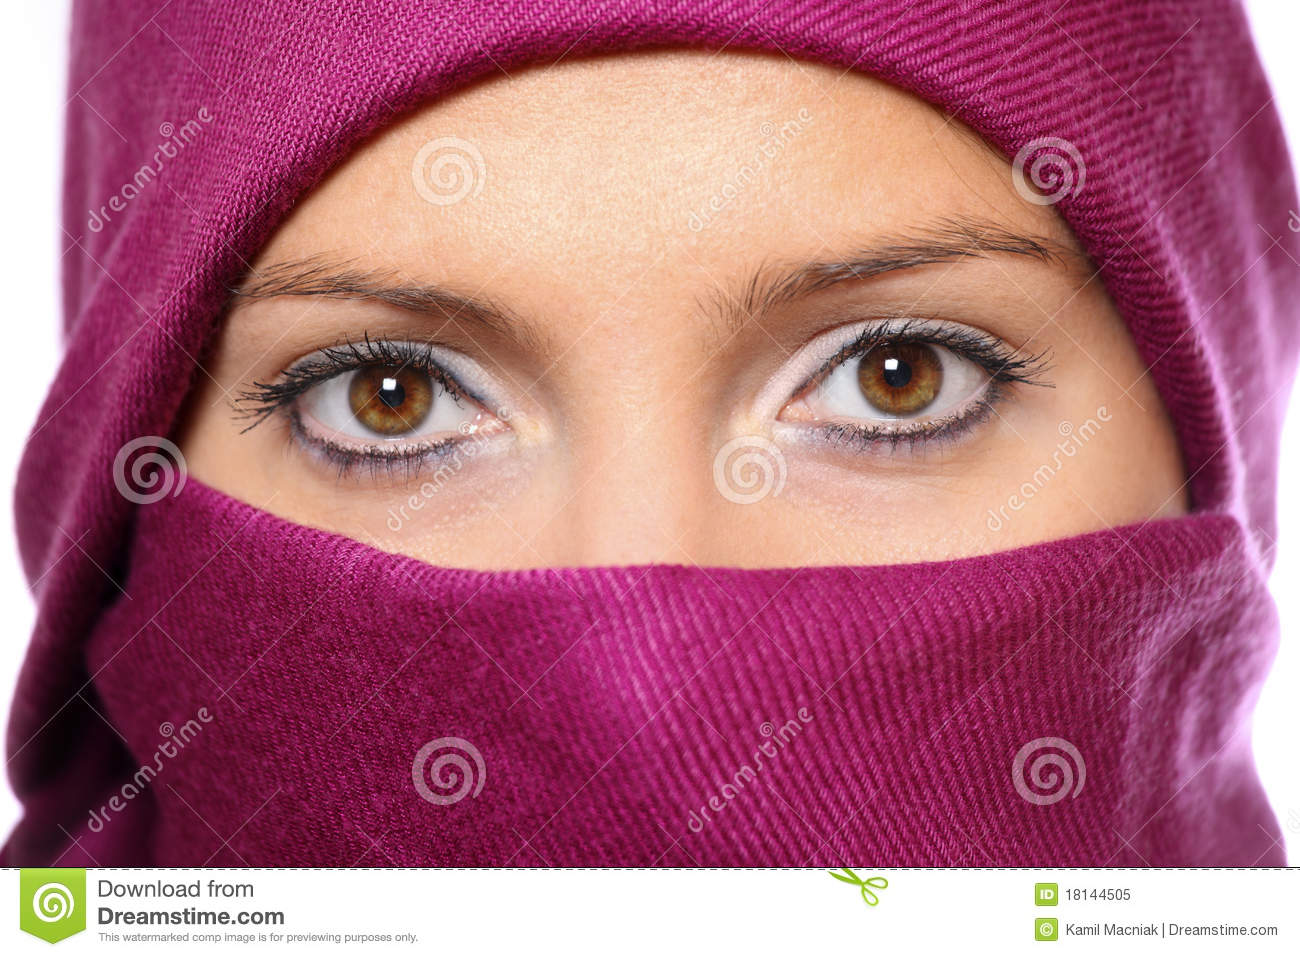 berry creek muslim girl personals Find great prices, brands & services at h-e-b try curbside grocery pickup, explore store products, view recipes, find a store, create shopping lists & more.